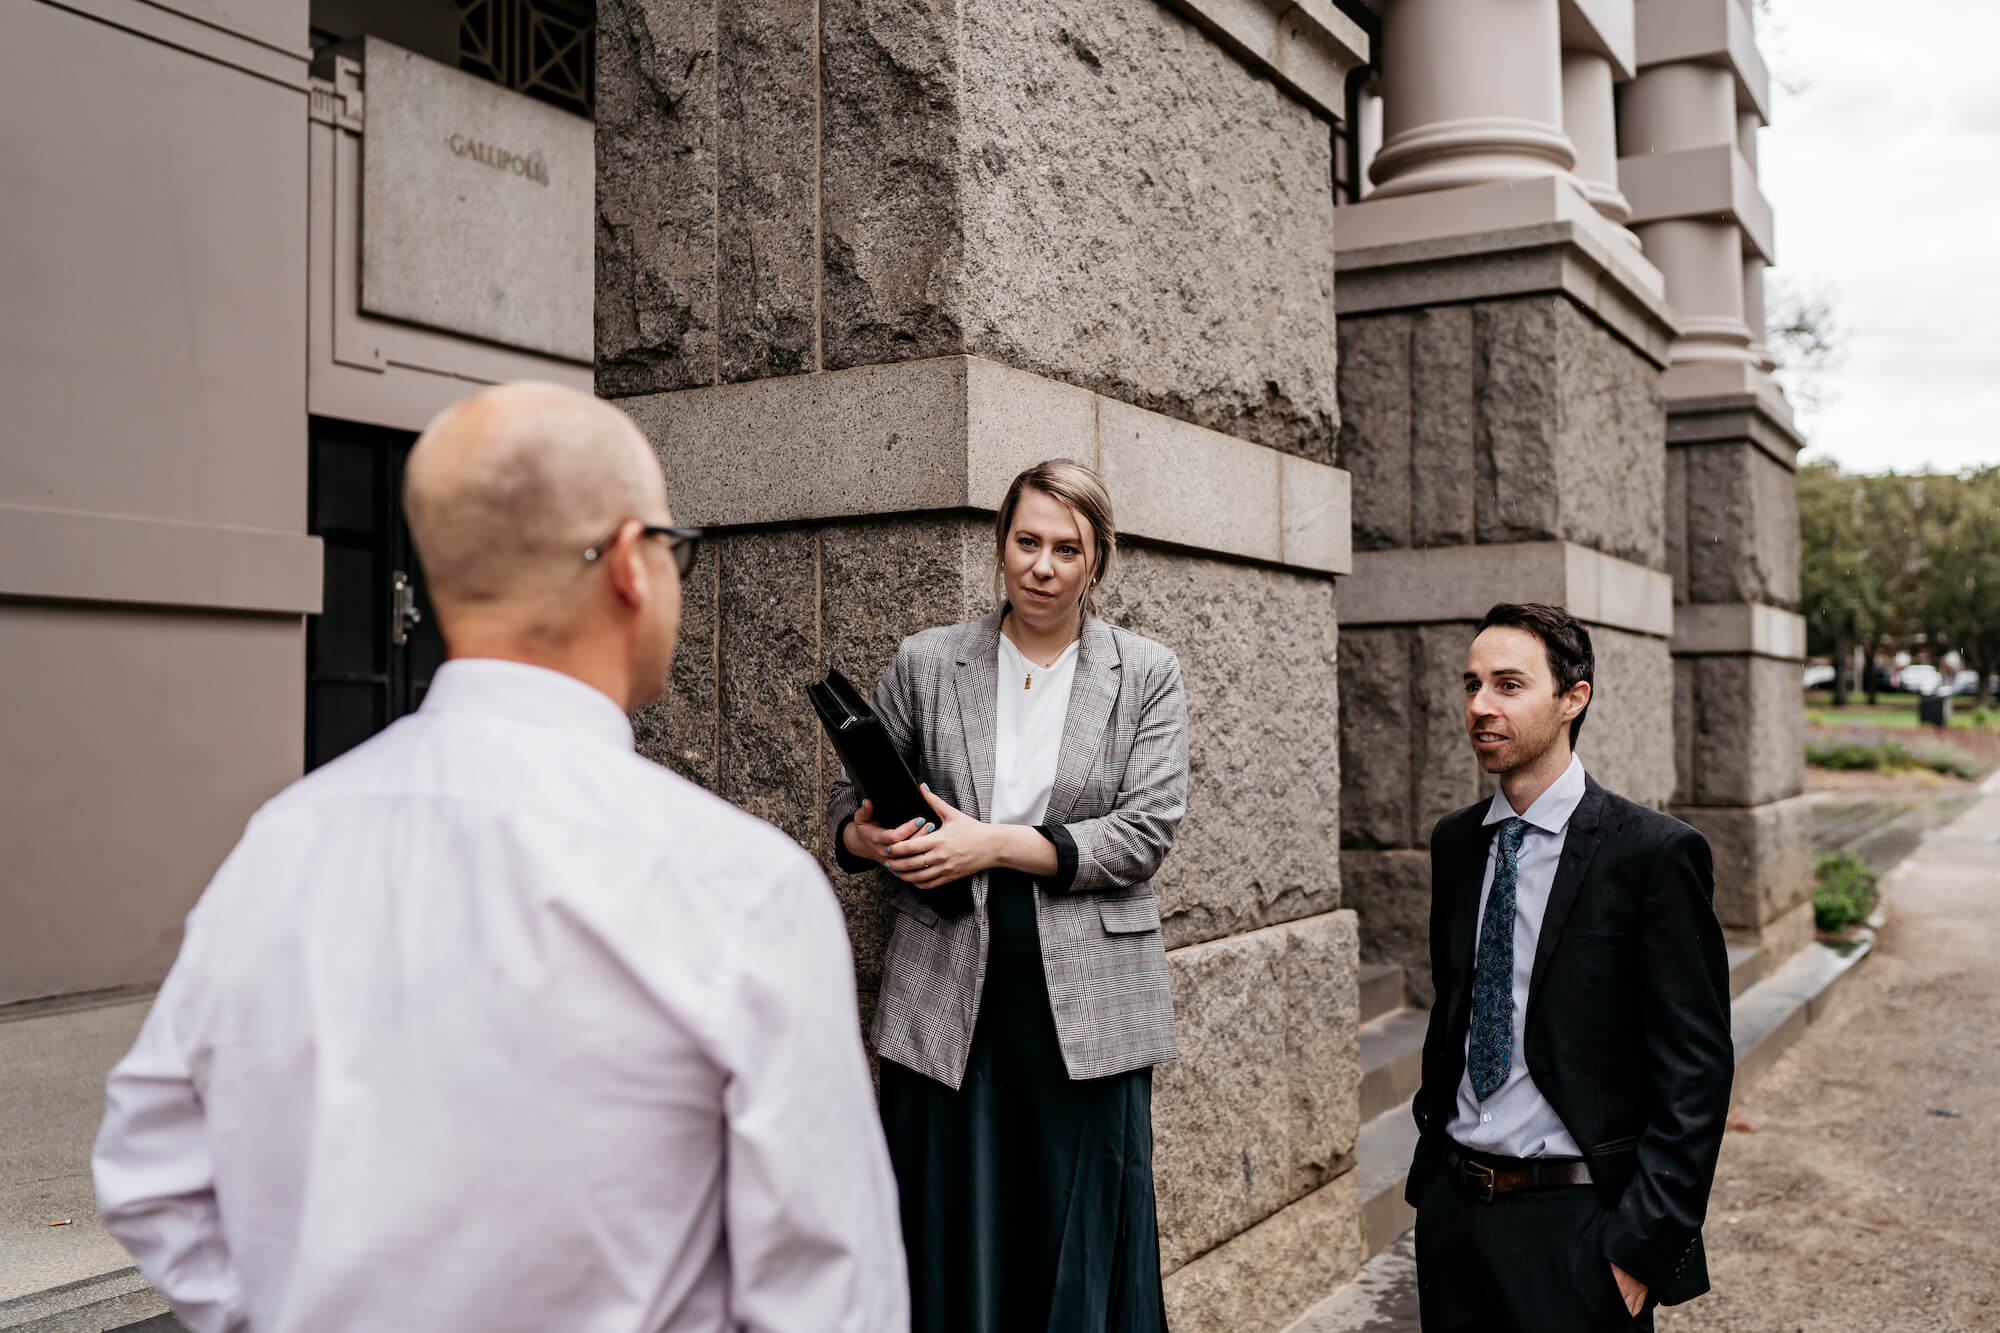 BCLS lawyers in front of stone building, discussing how to help with Centrelink issues